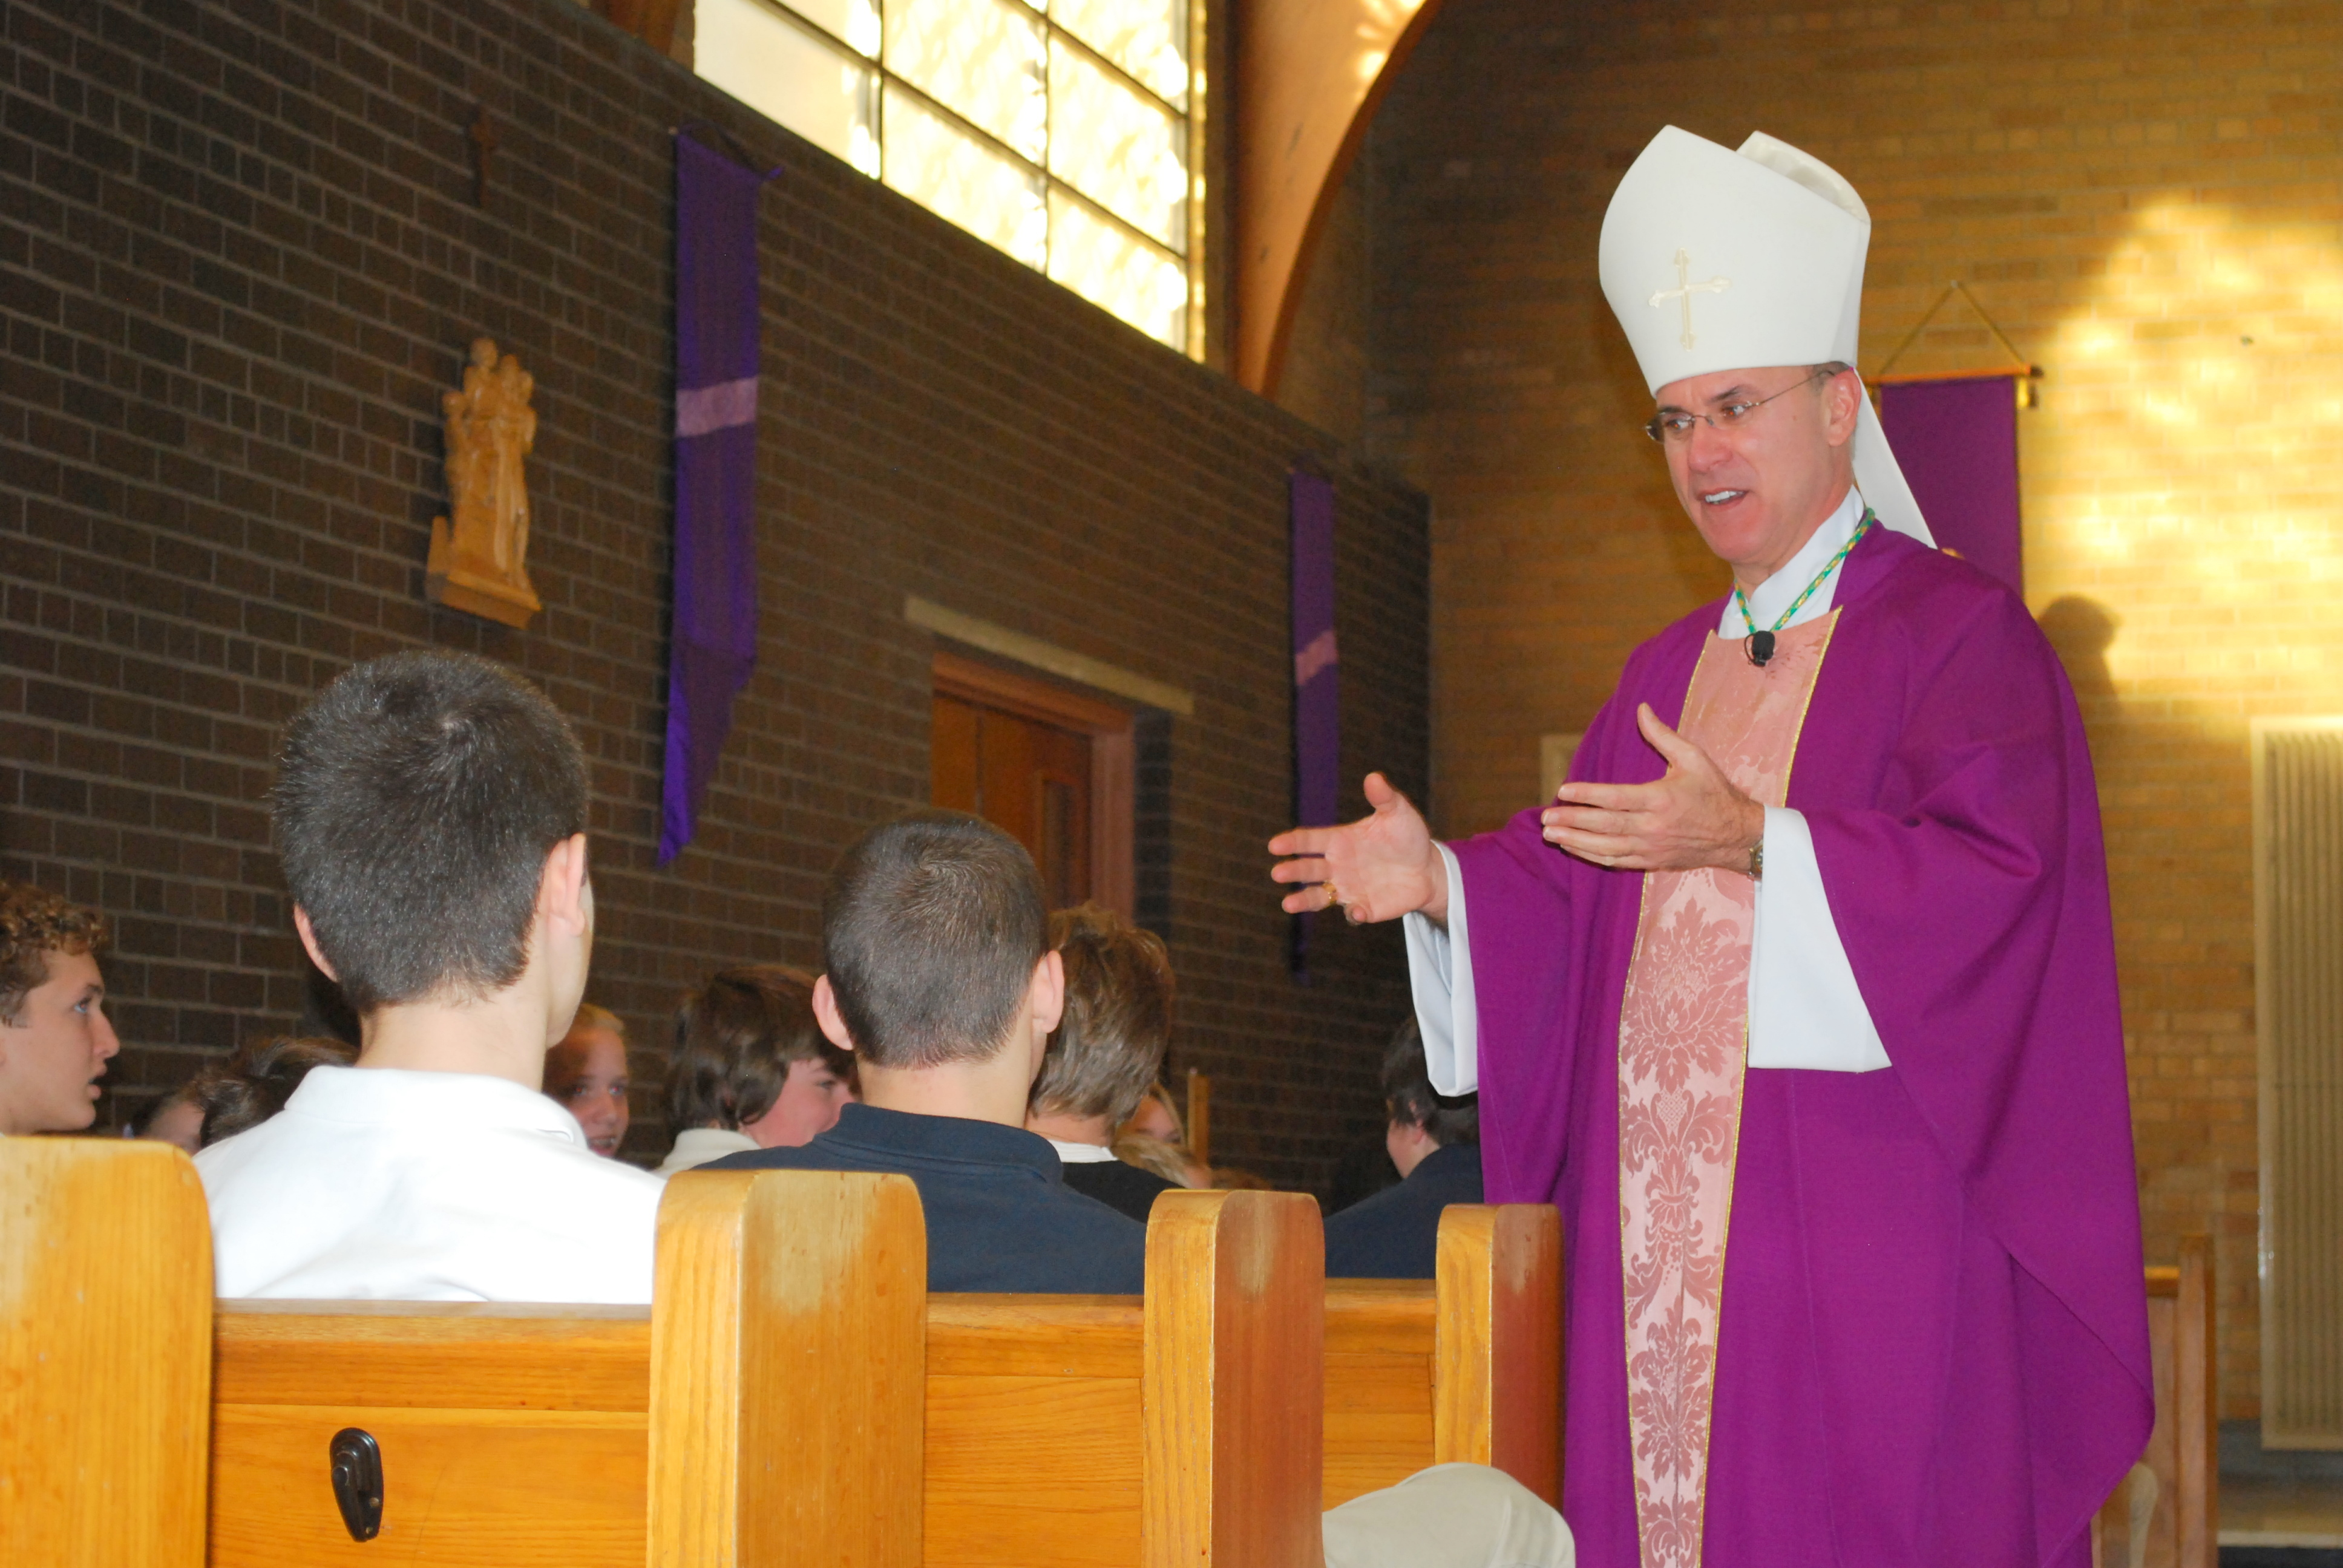 Bishop rhoades makes pastoral visit to christ the king school during bishop rhoades homily at the all school mass he spoke of the book of the prophet isaiah which looks for a king to come and save the jewish people kristyandbryce Image collections